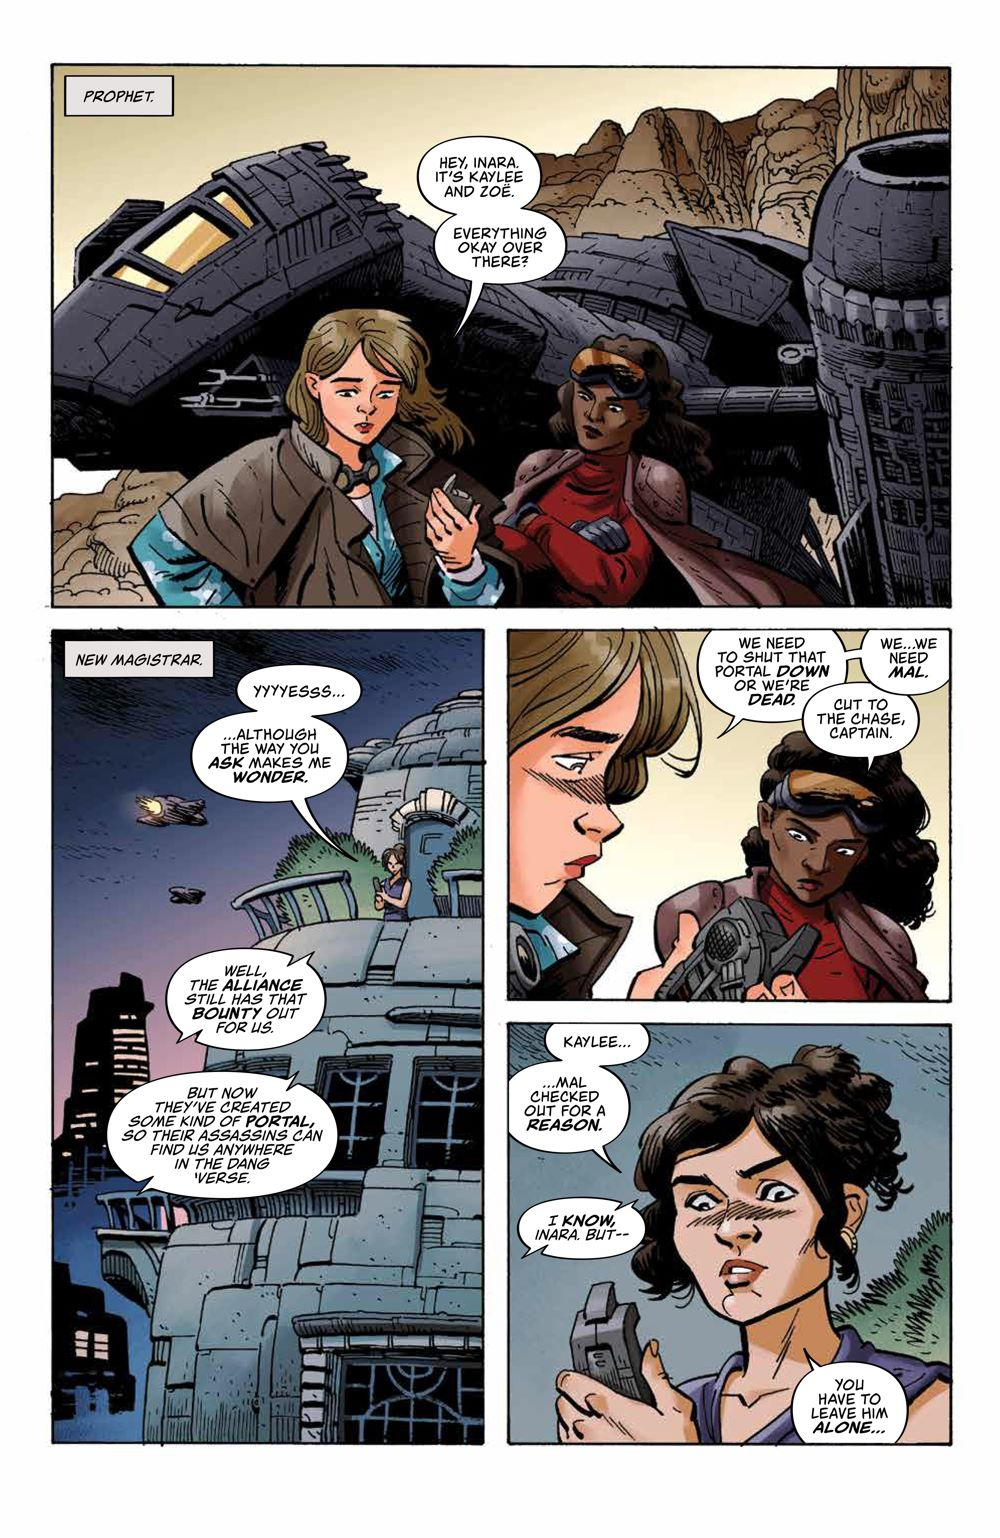 Firefly_027_PRESS_3 ComicList Previews: FIREFLY #27